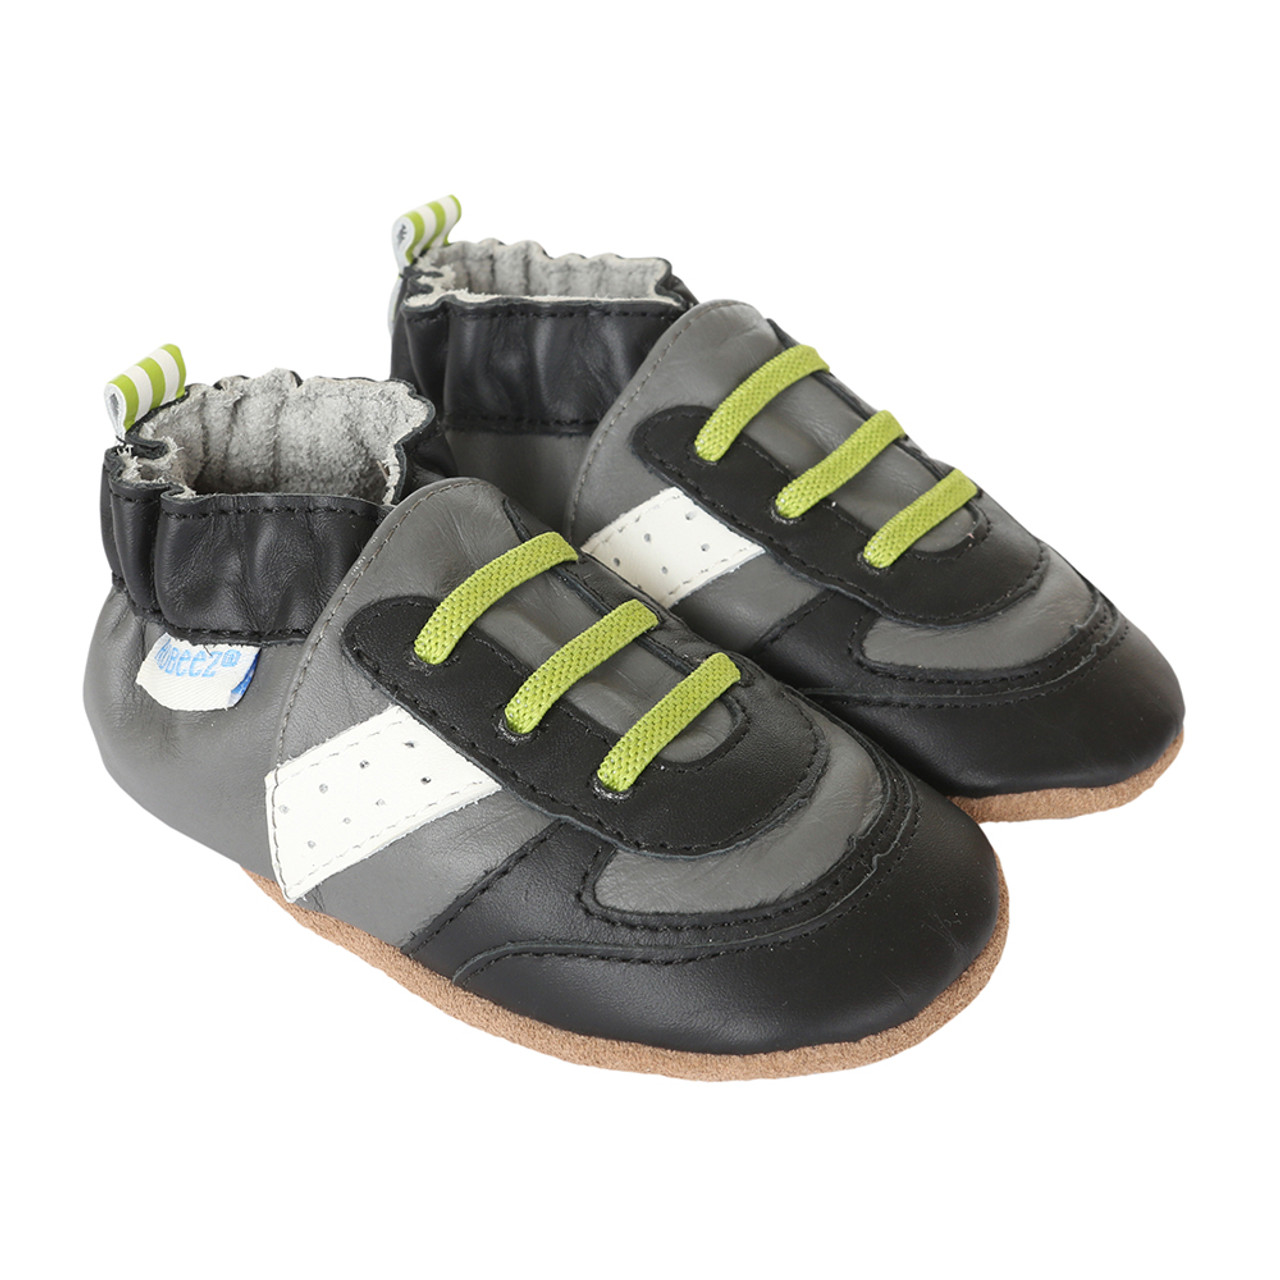 timeless design d9268 c2cbe Athletic shoes for babies, infants and toddlers. This baby shoes are in  black and